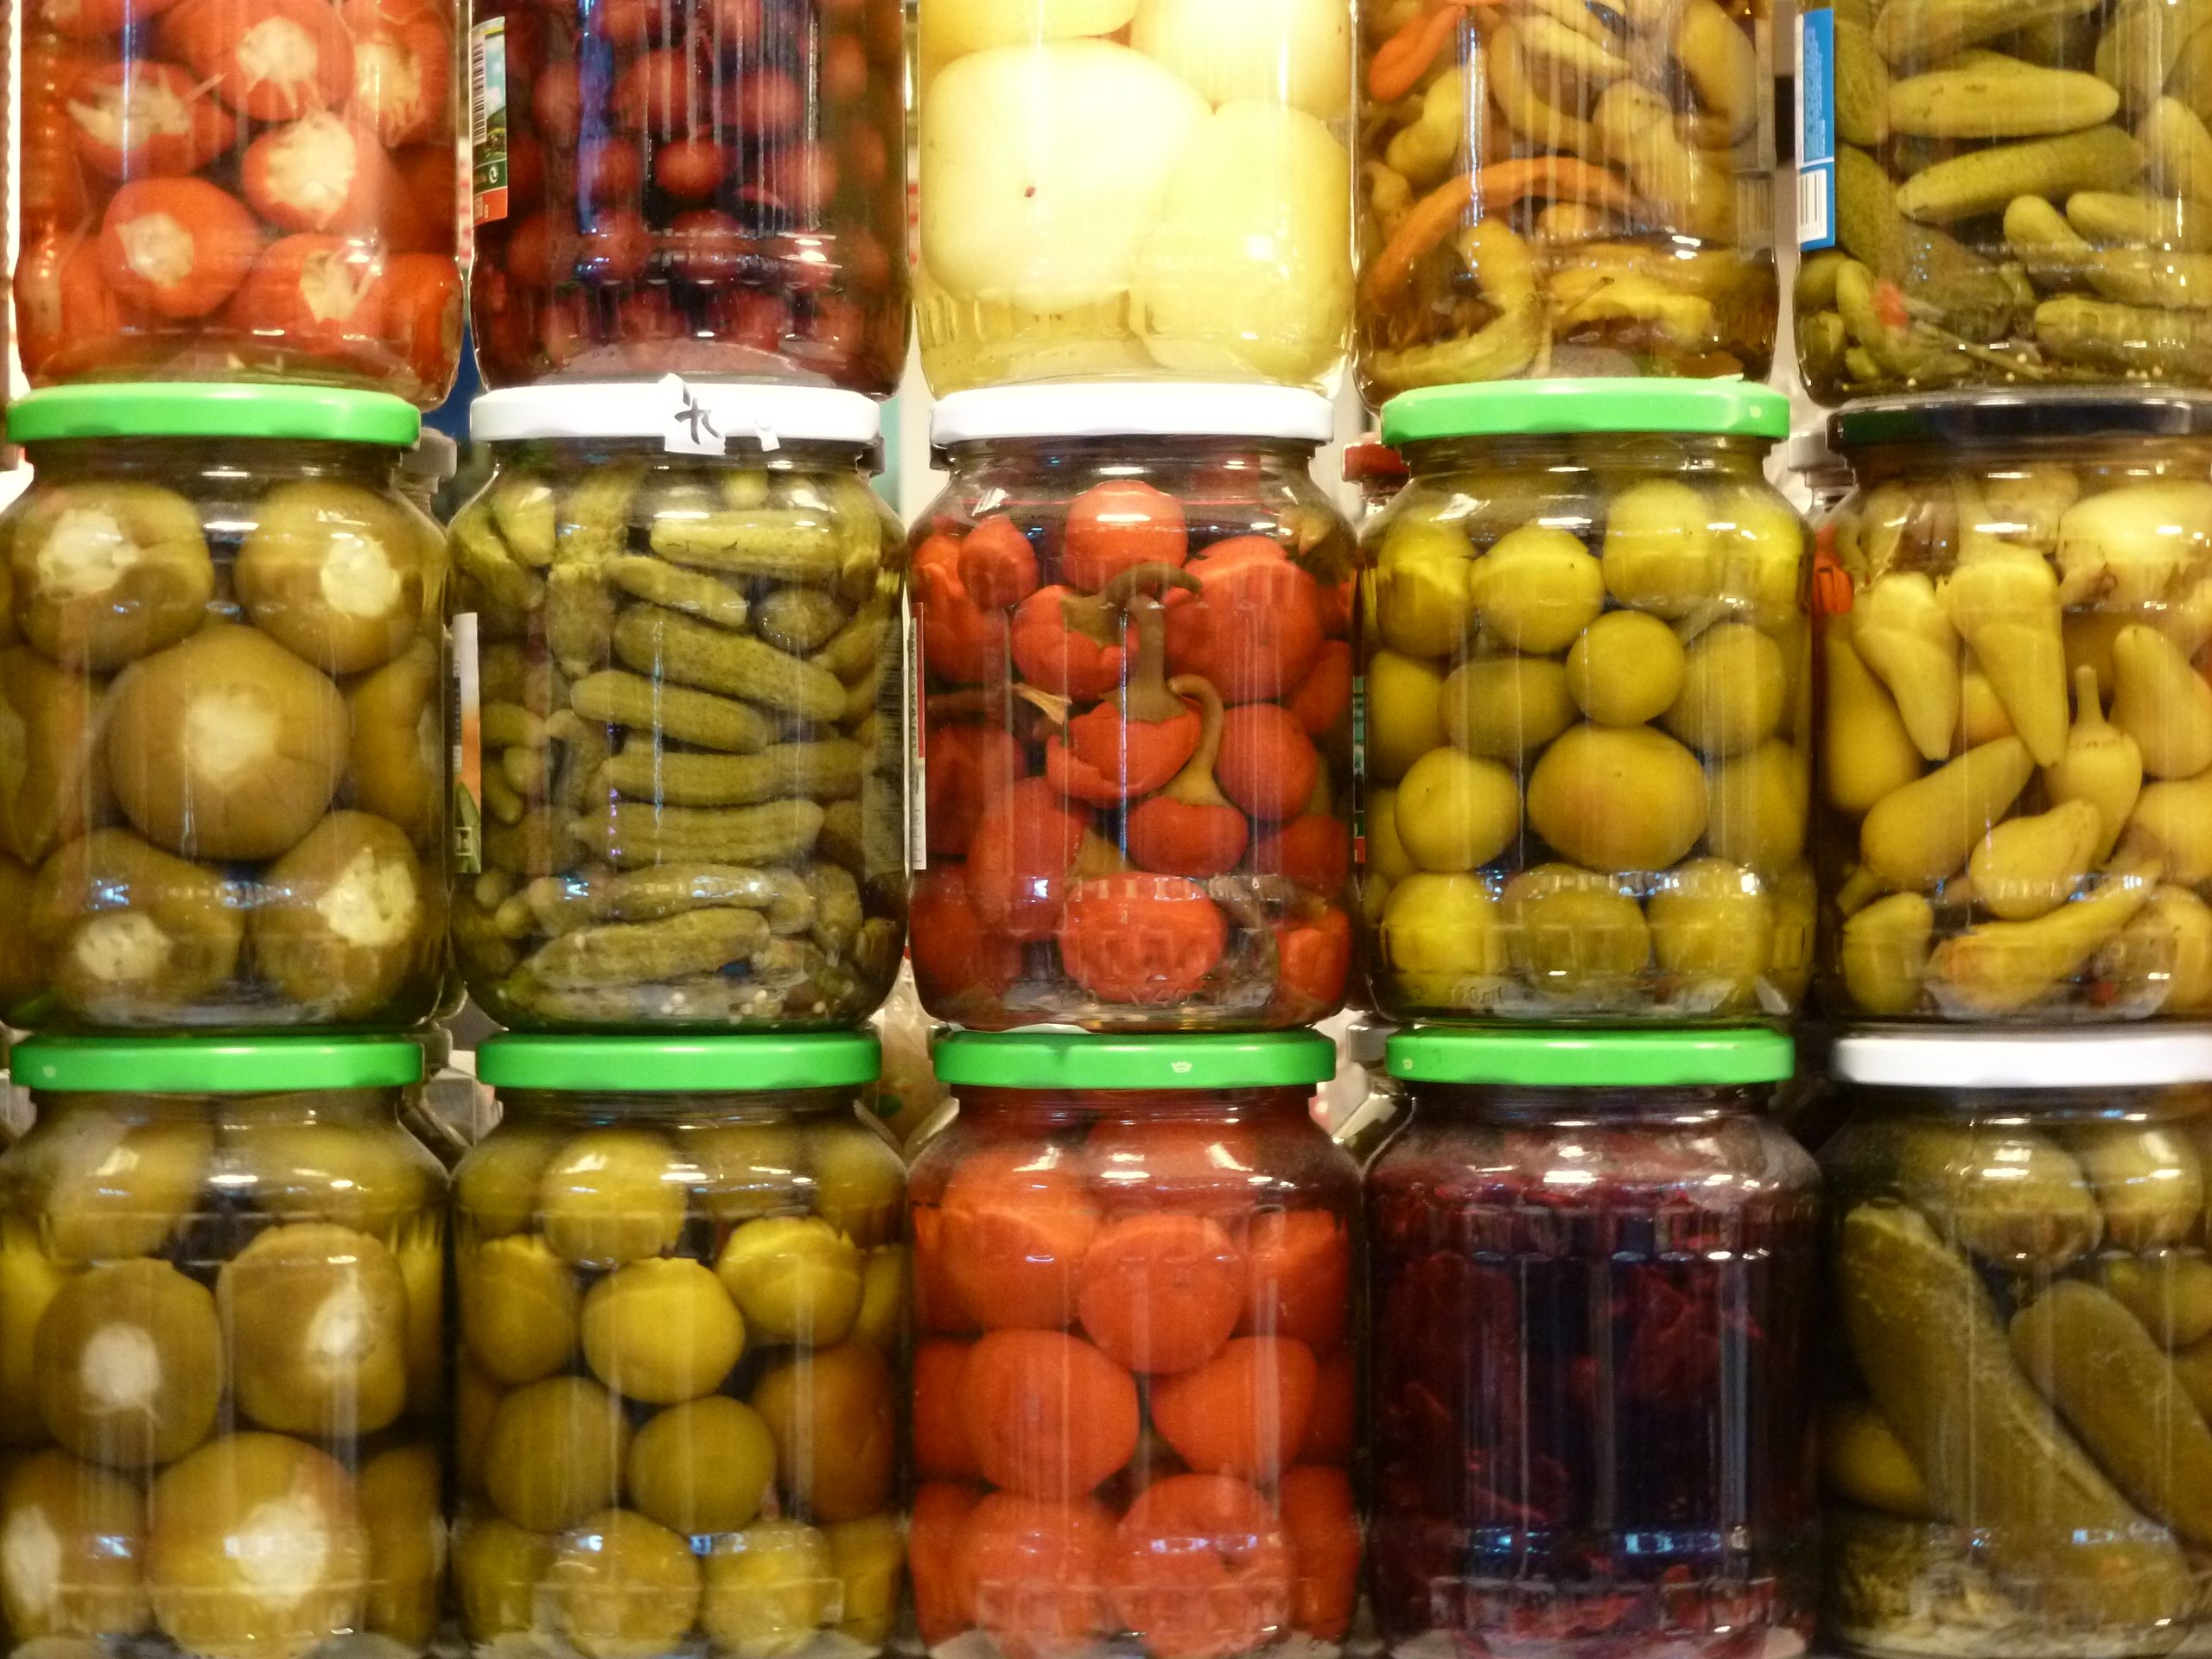 Pickled everything at the market in Budapest, Hungary